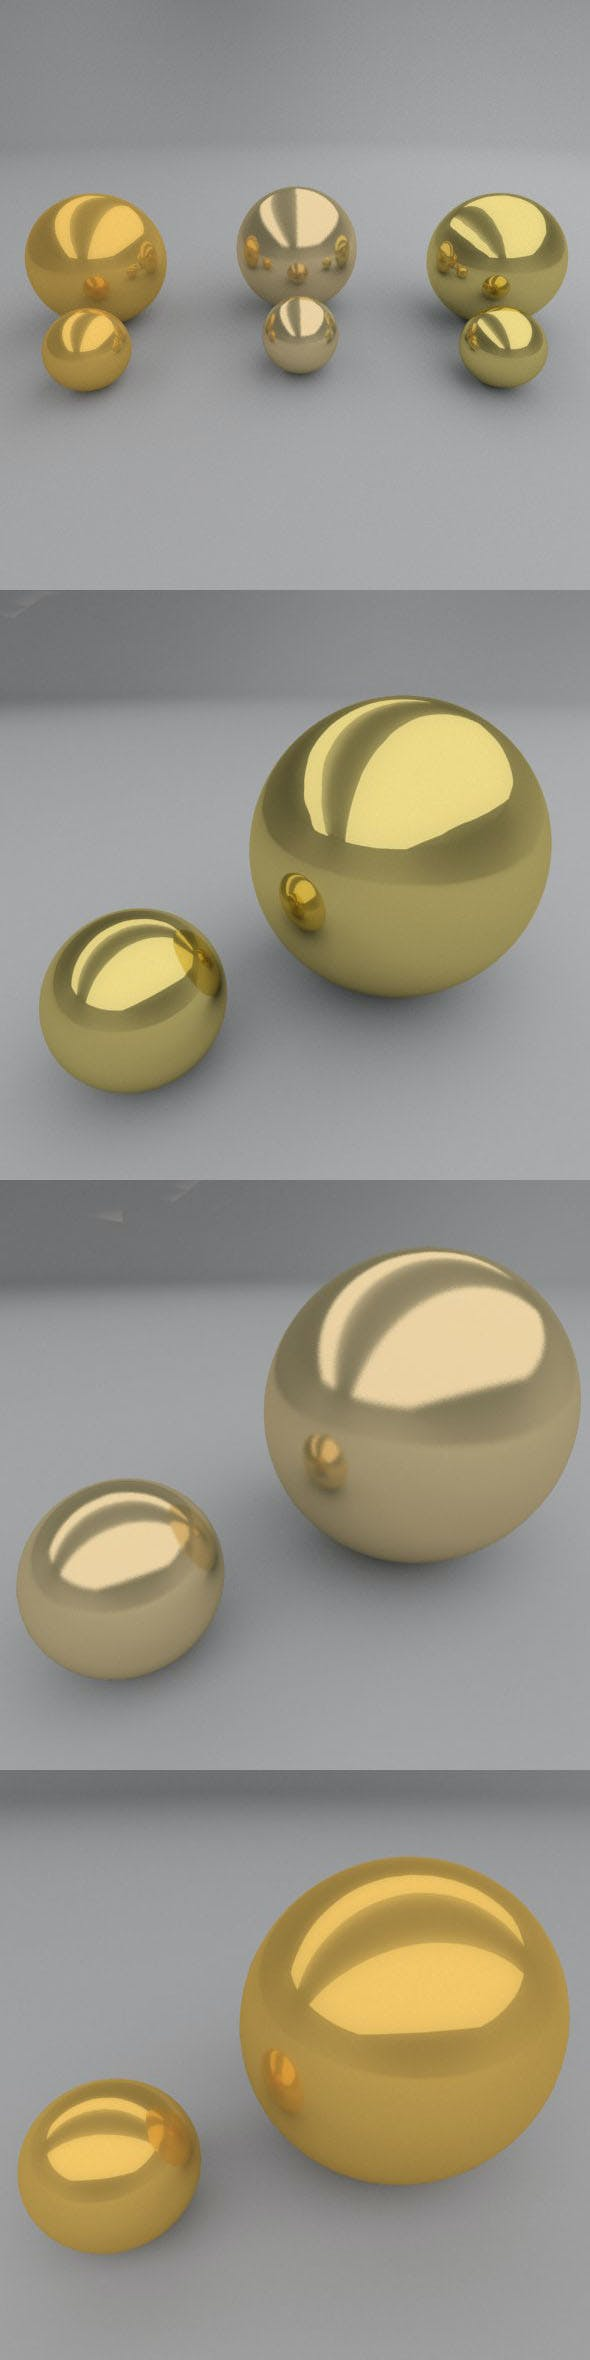 3 GOLD materials - 3DOcean Item for Sale